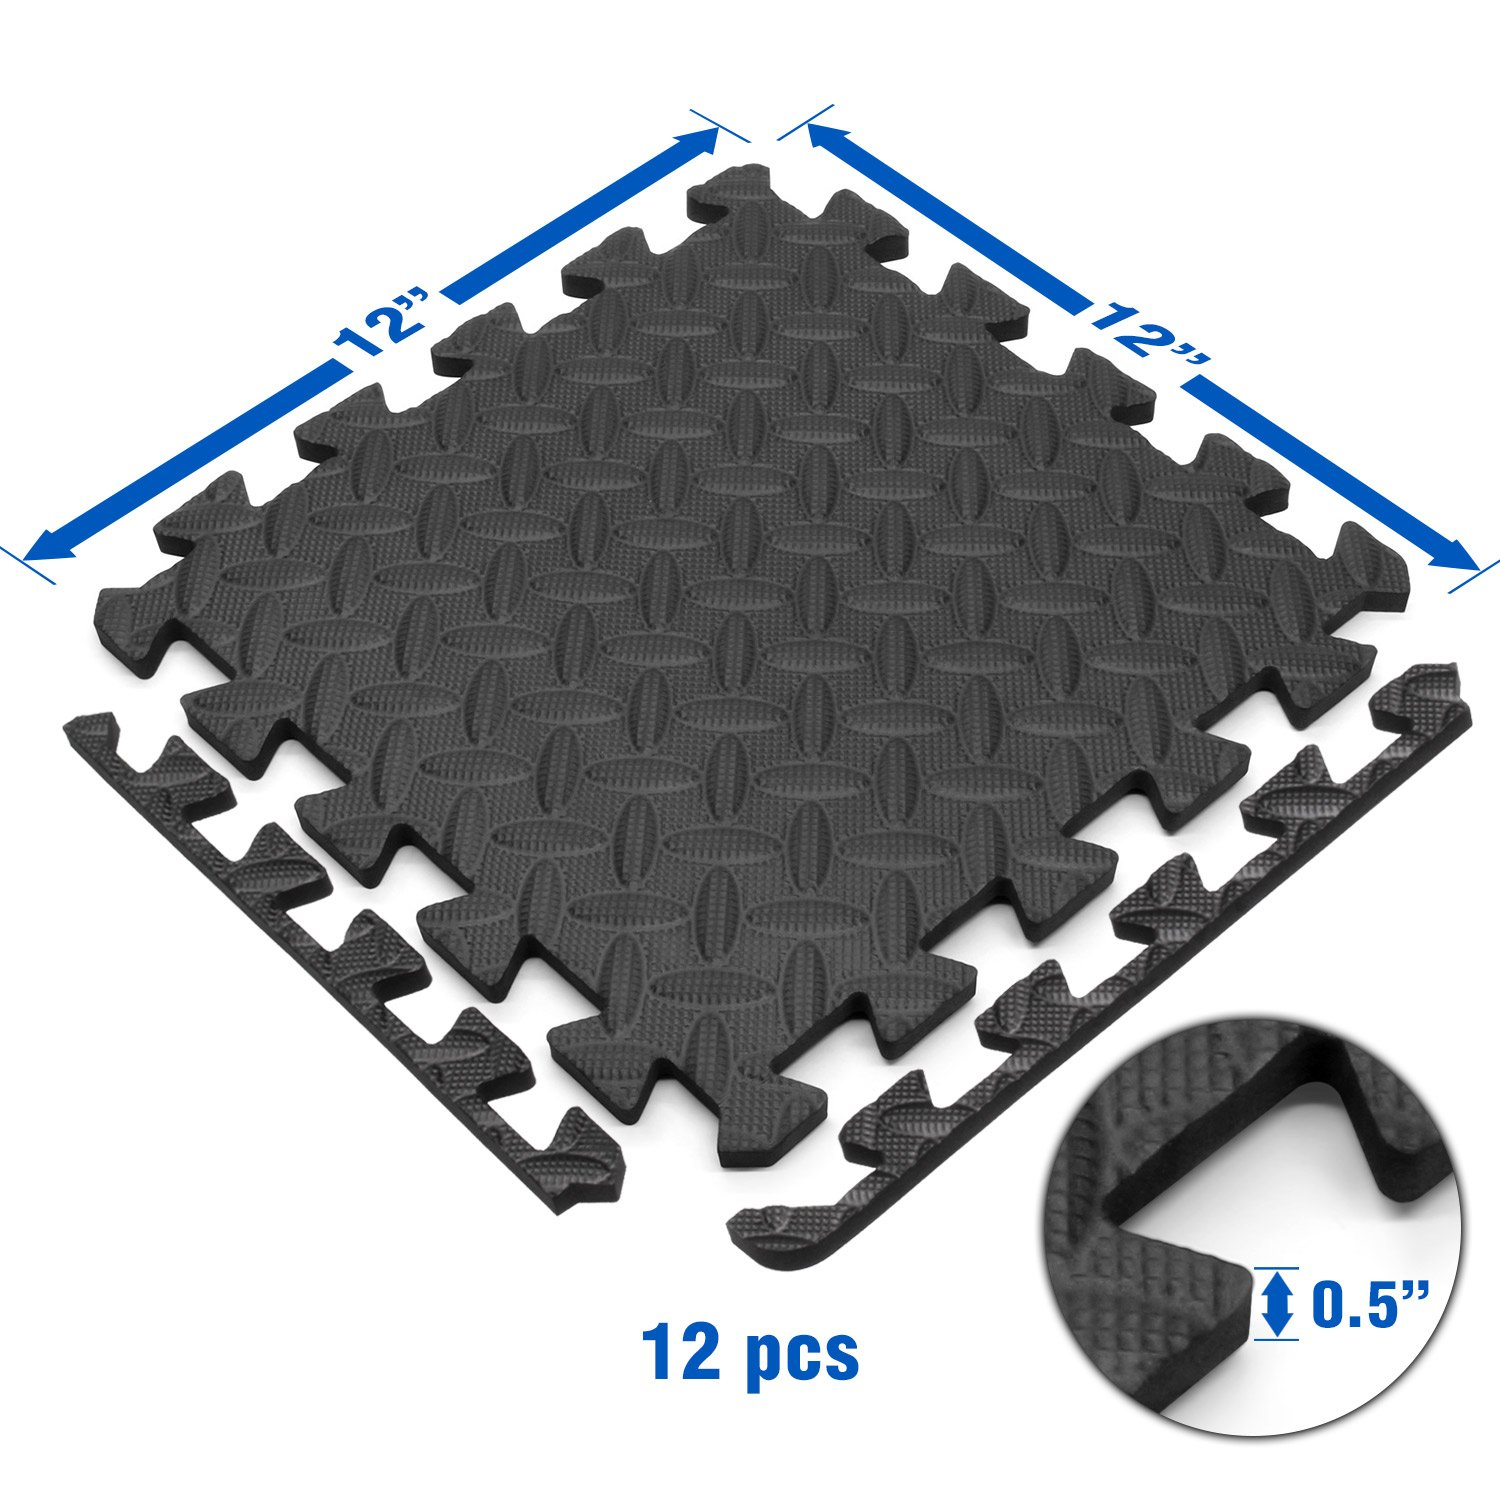 Yes4All Interlocking Exercise Foam Mats with Border – Interlocking Floor Mats for Gym Equipment – Eva Interlocking Floor Tiles (12 Square Feet, Black) by Yes4All (Image #3)